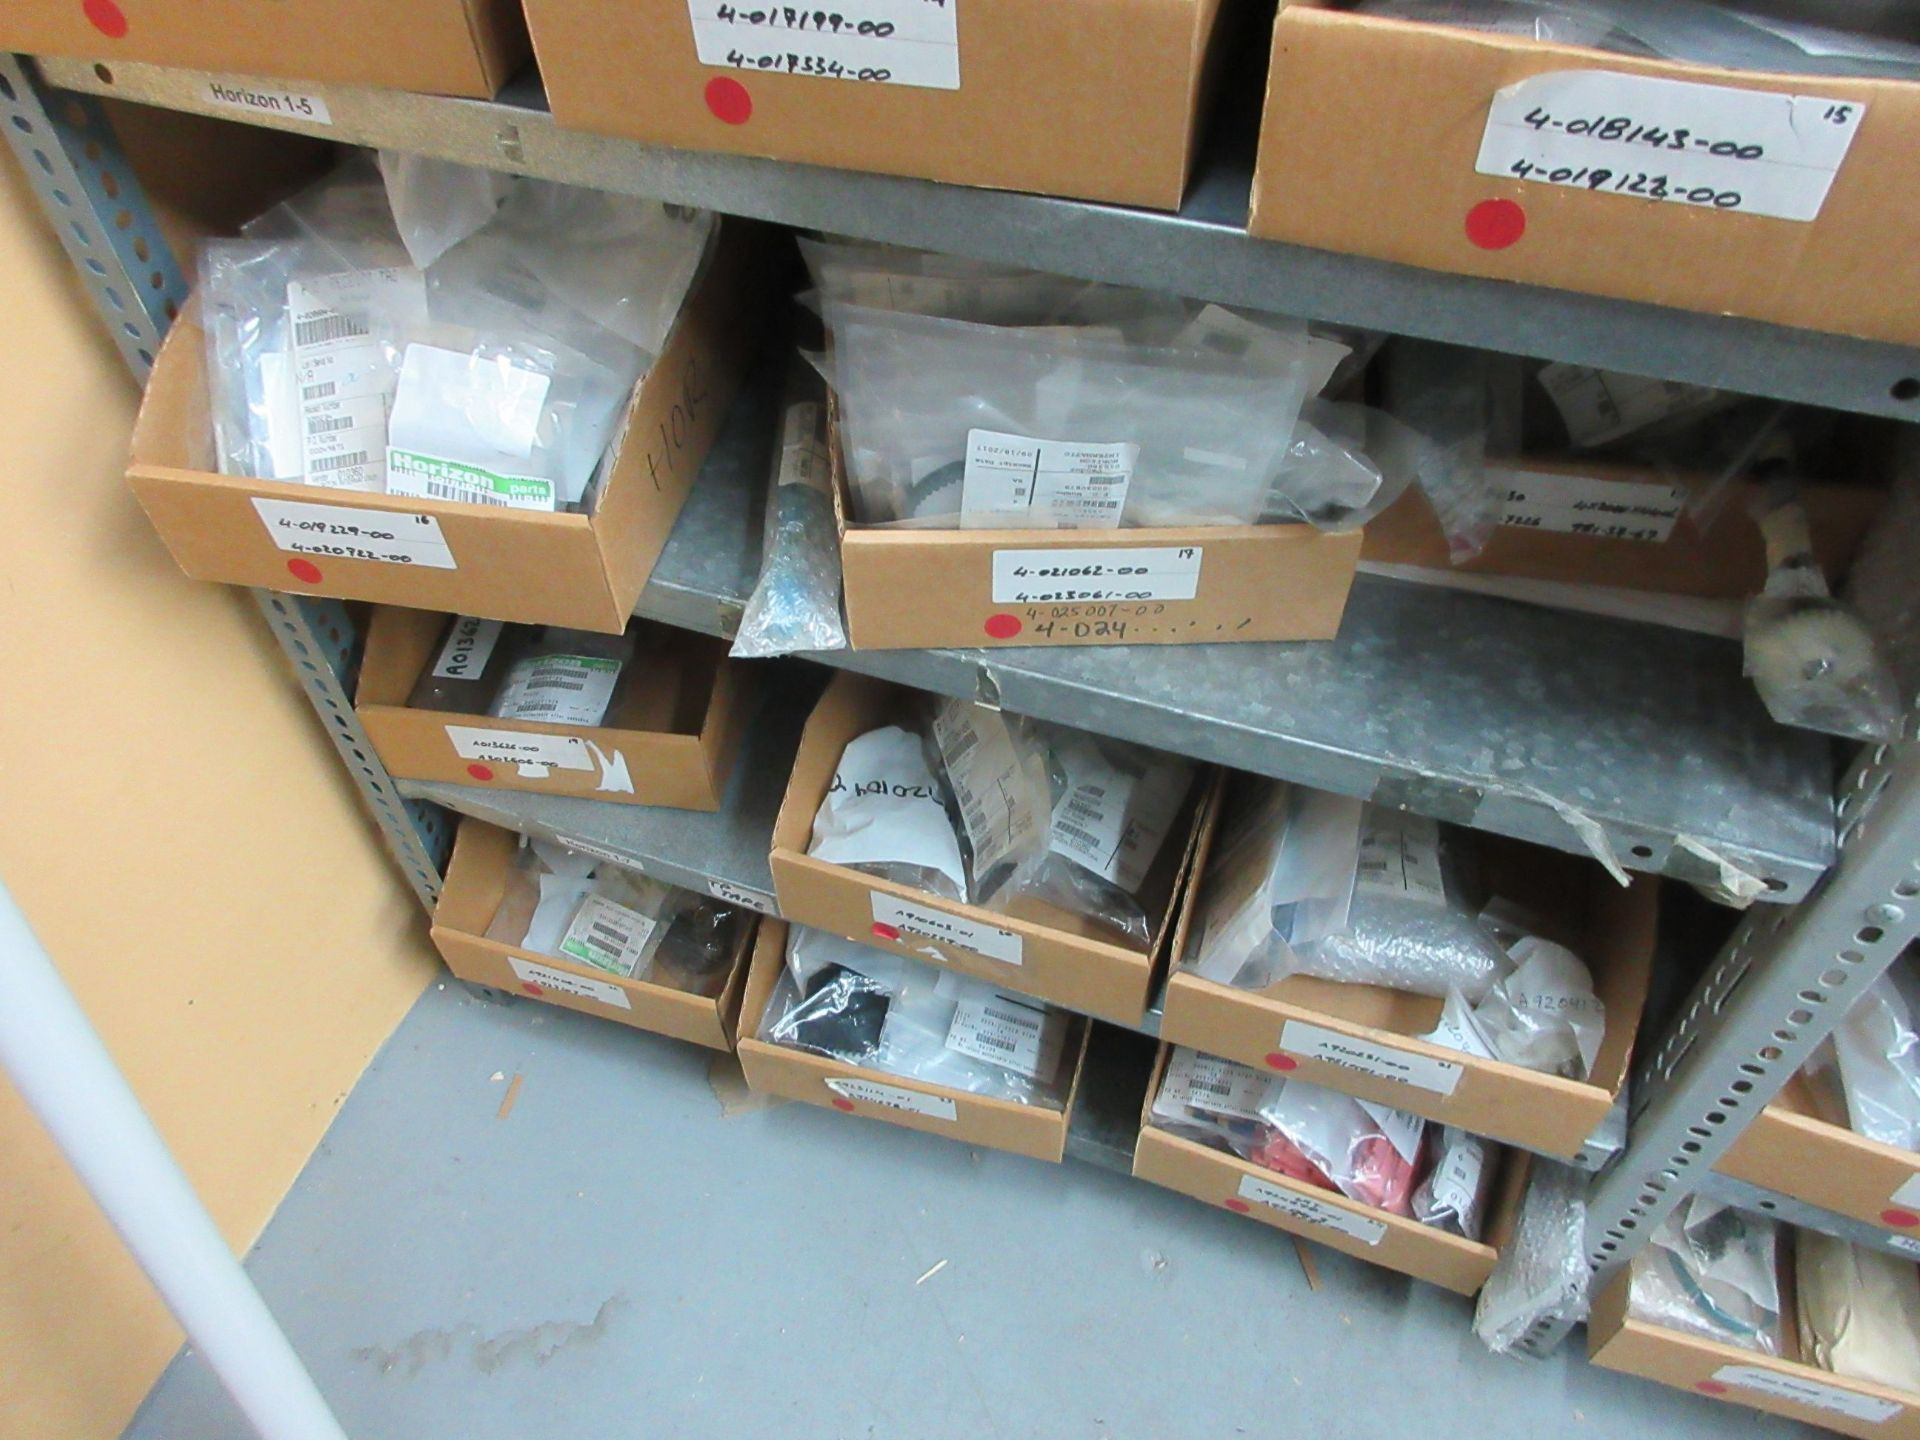 LOT Including boxes of assorted parts for STANDARD HORIZON (approx. Qty 27 boxes) - Image 6 of 6